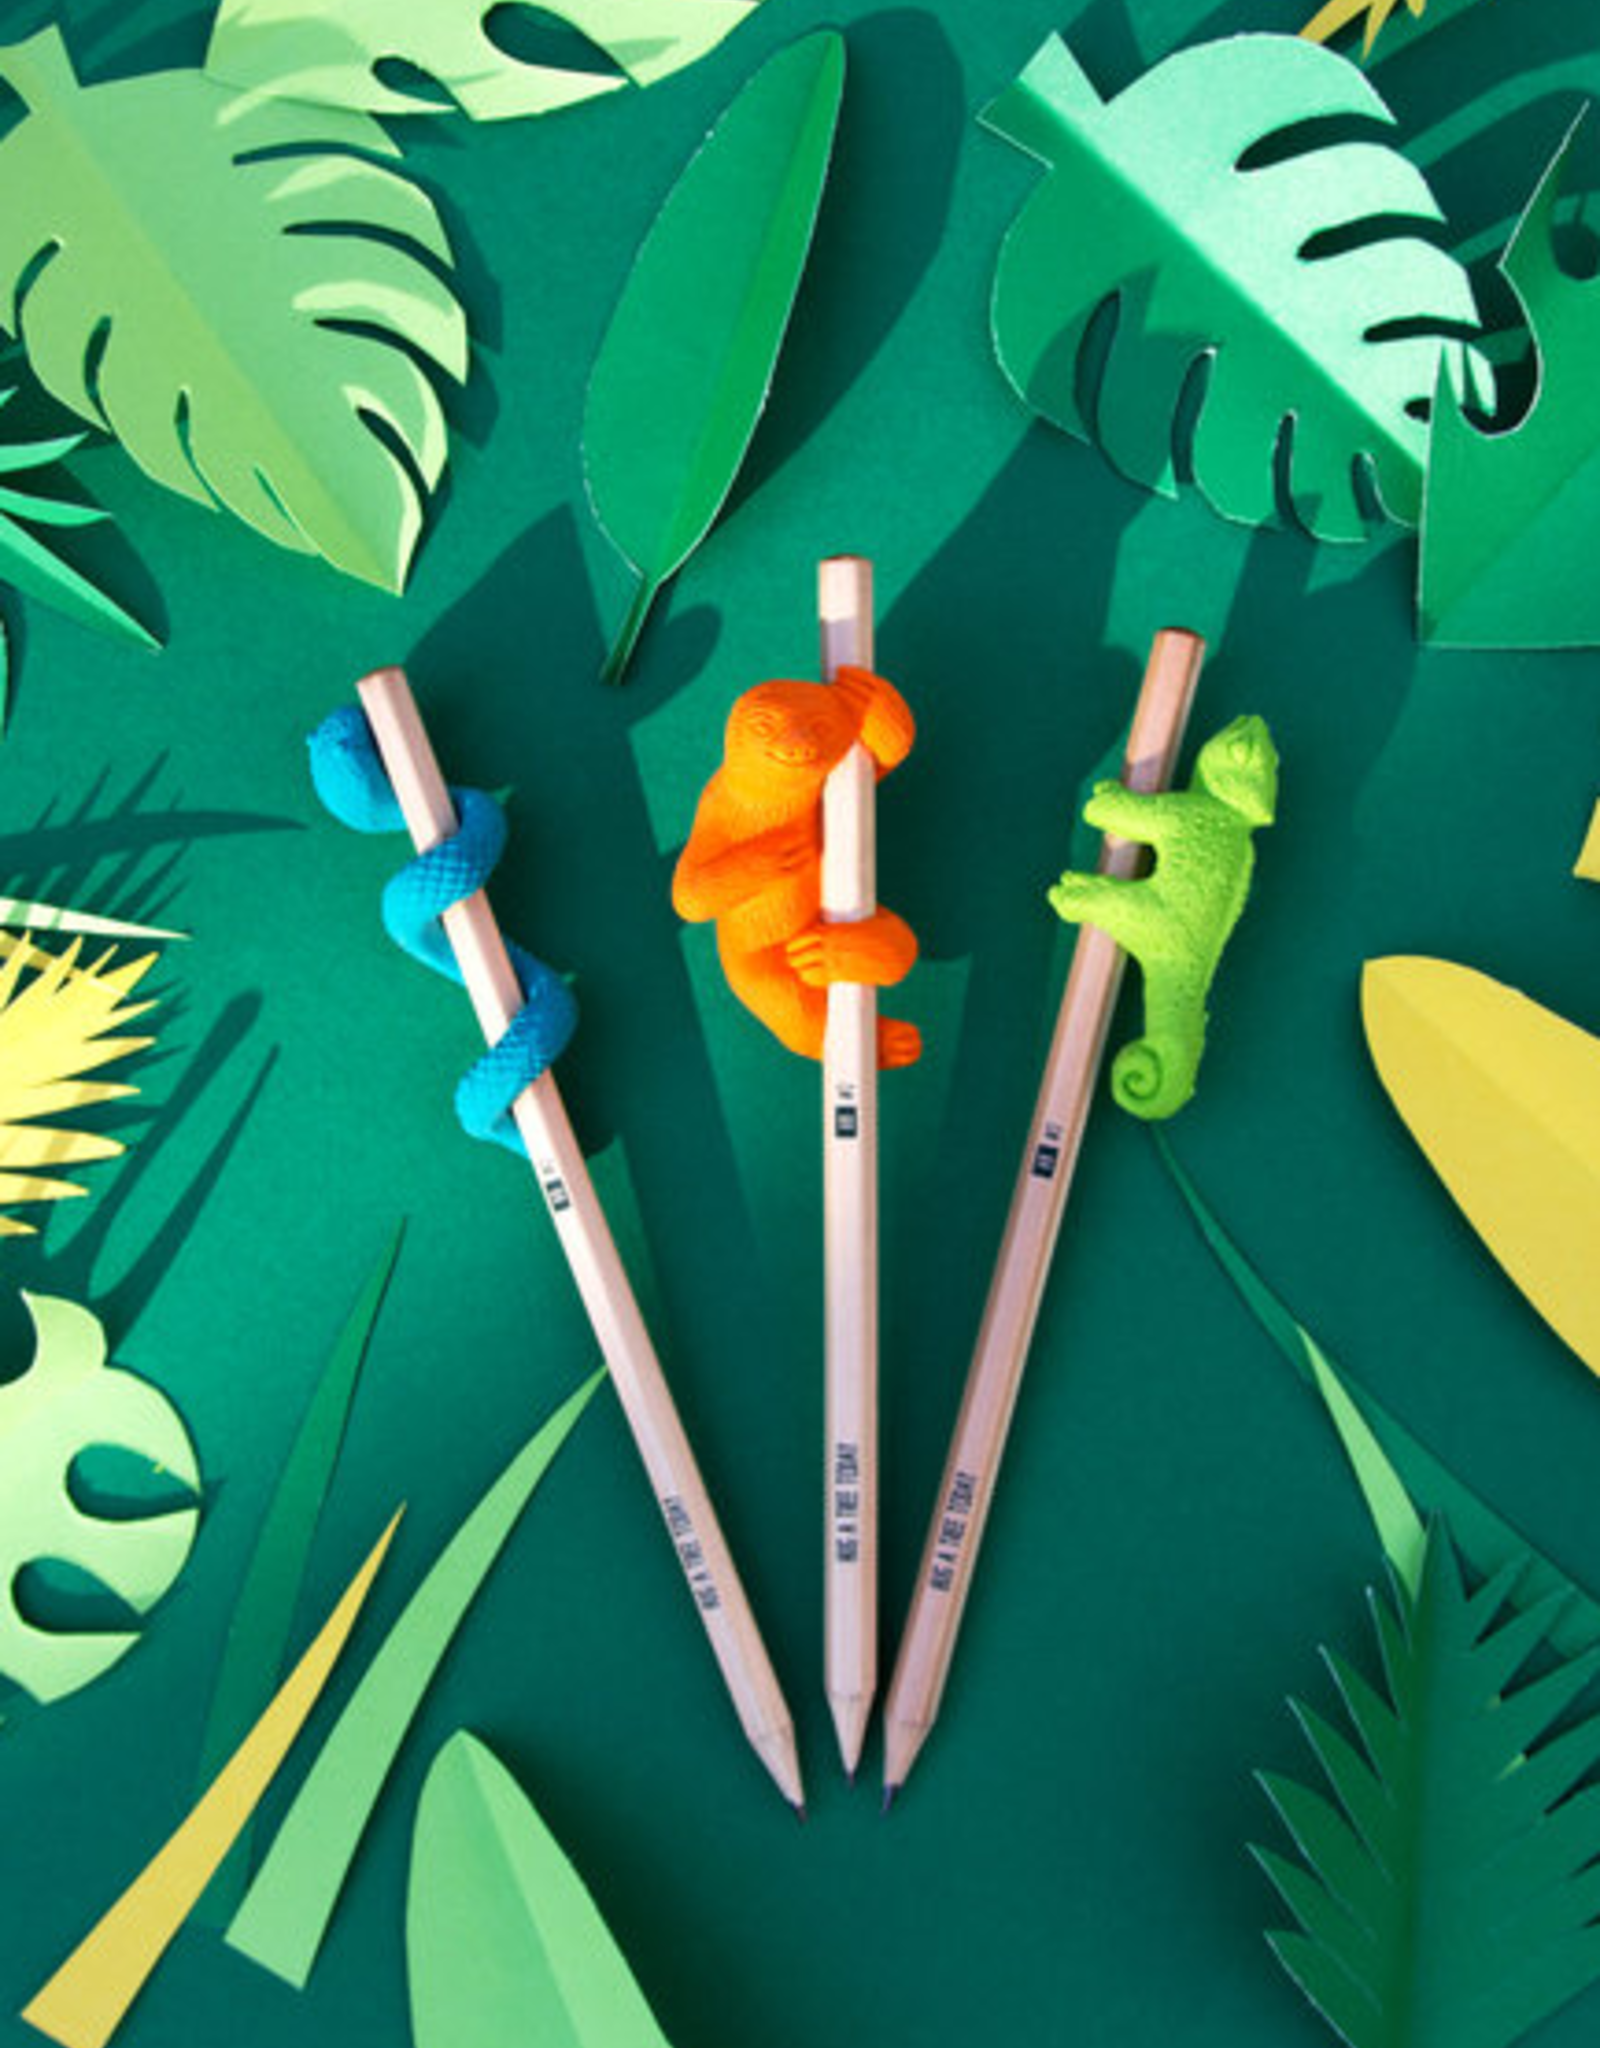 Sloth Jungle Eraser & Pencil Set